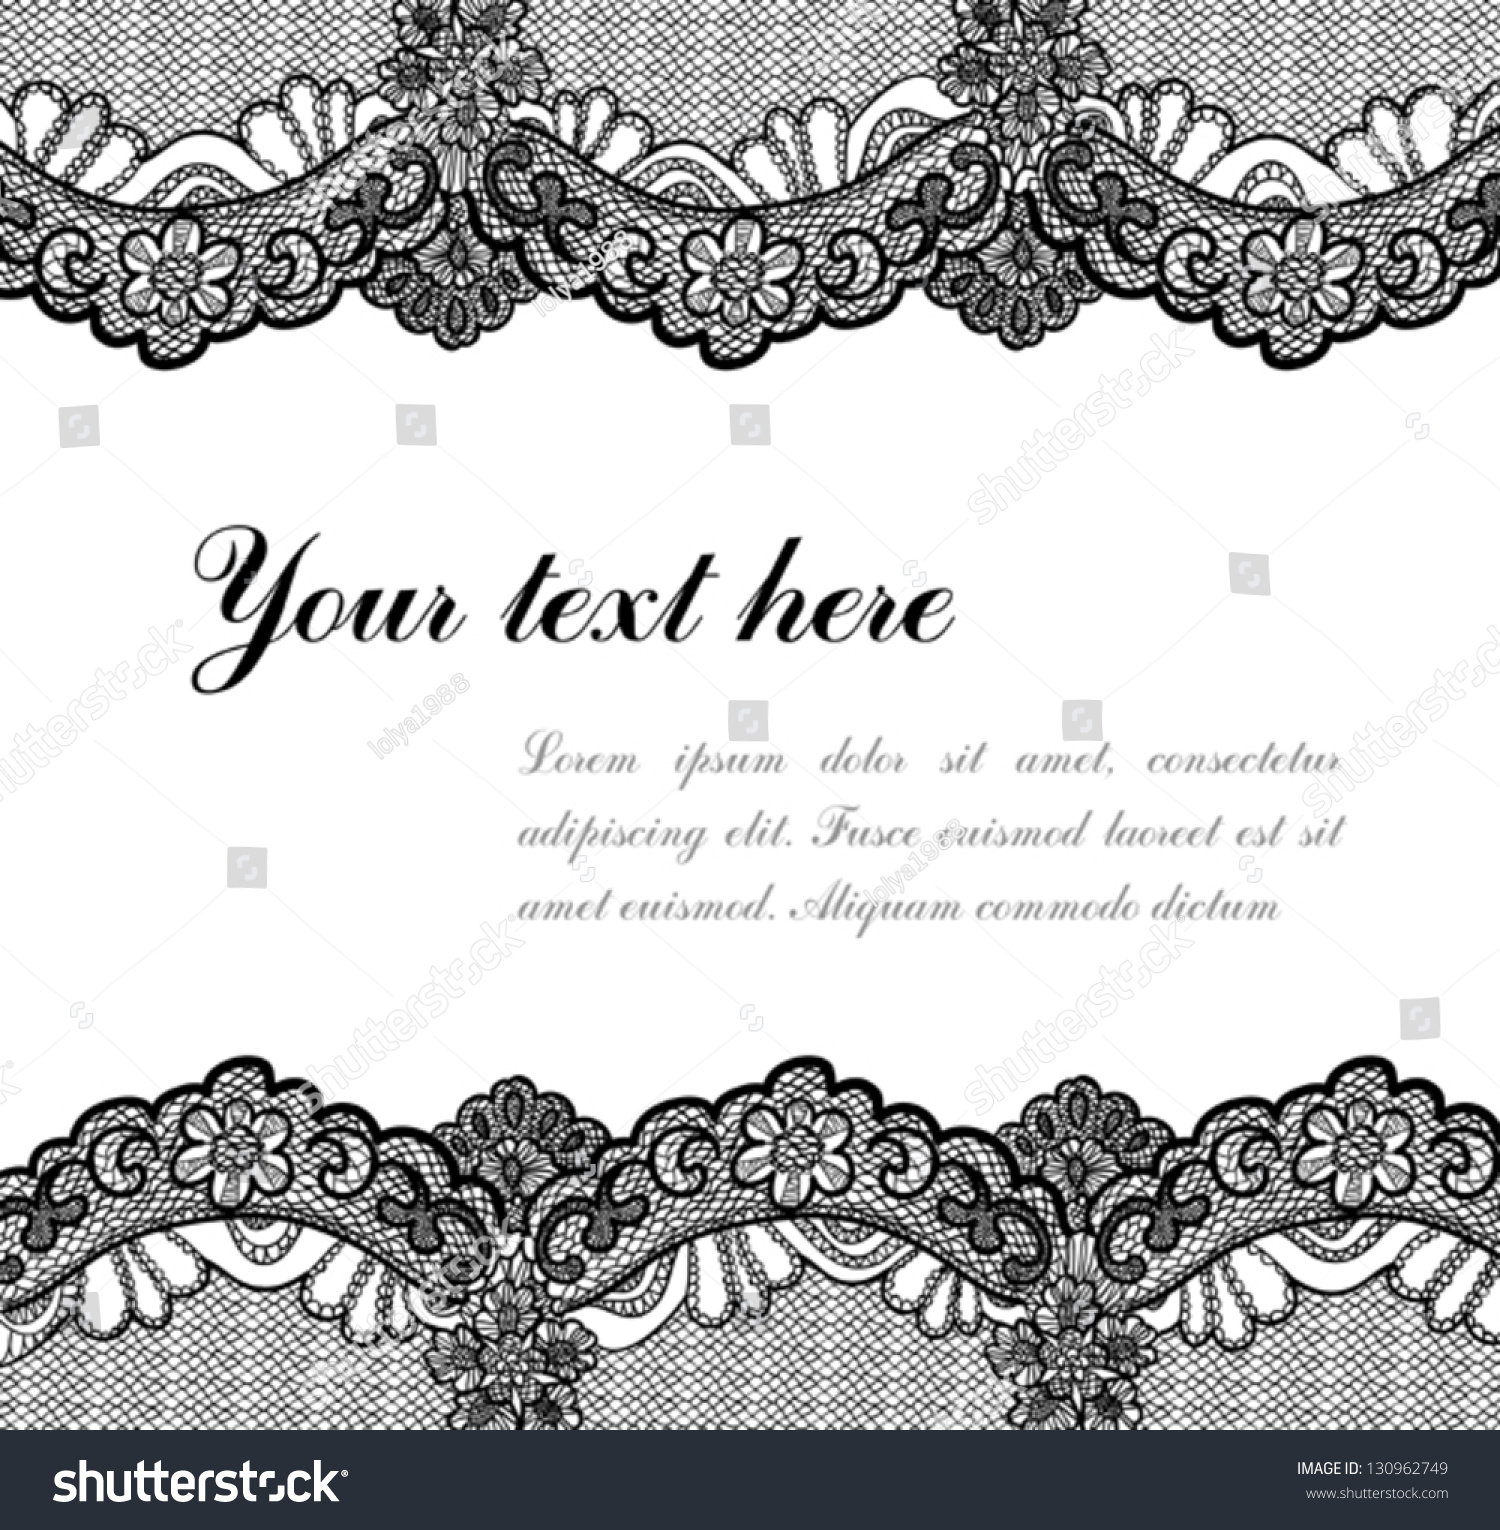 Black Lace Background Stock Vector Illustration 130962749 ...